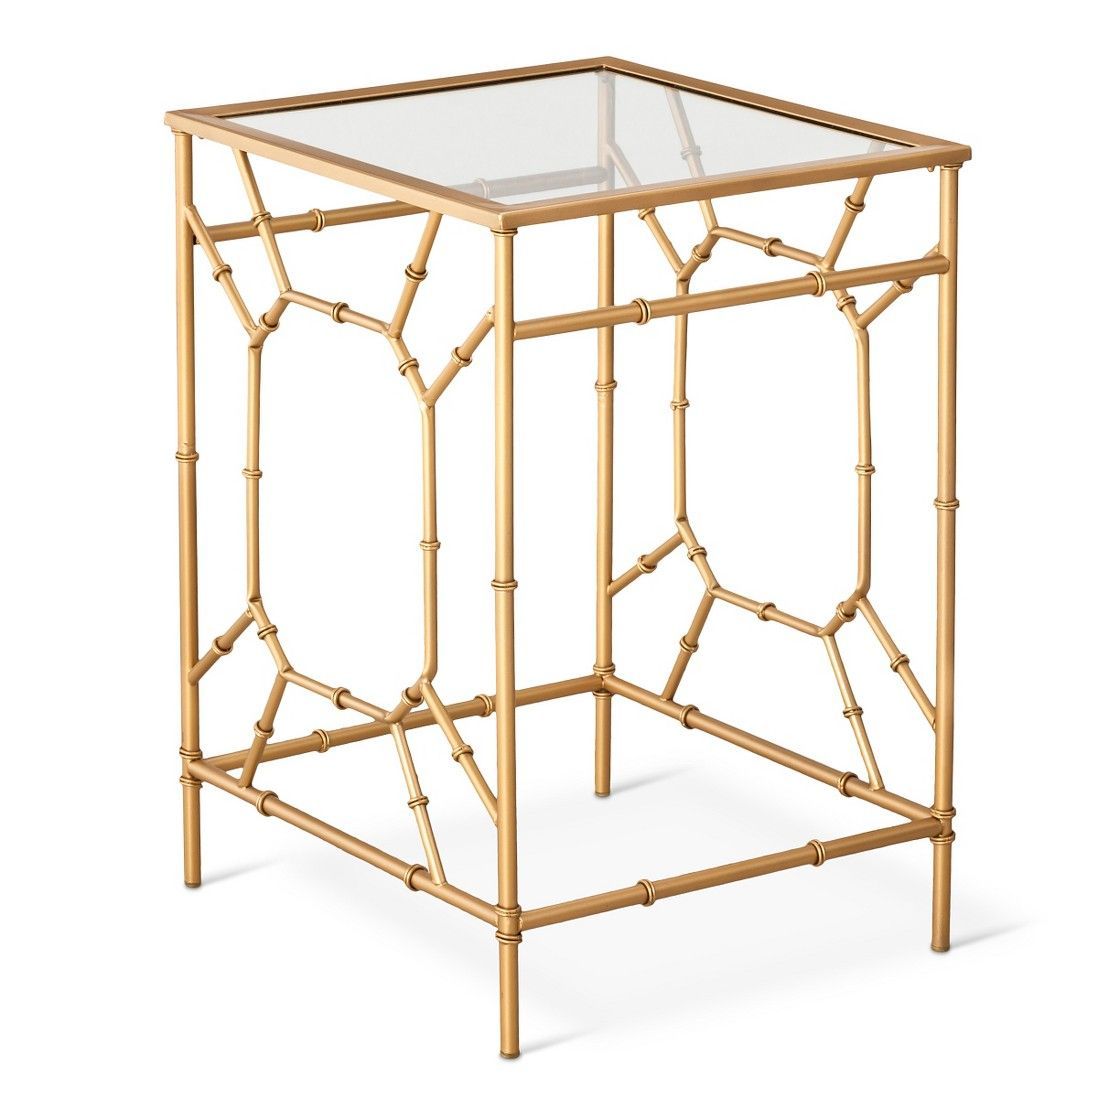 threshold bamboo motif accent table gold apartment livin target piece glass coffee set chairside reclaimed wood cabinet small tub chair bedroom chairs for spaces big sun umbrella